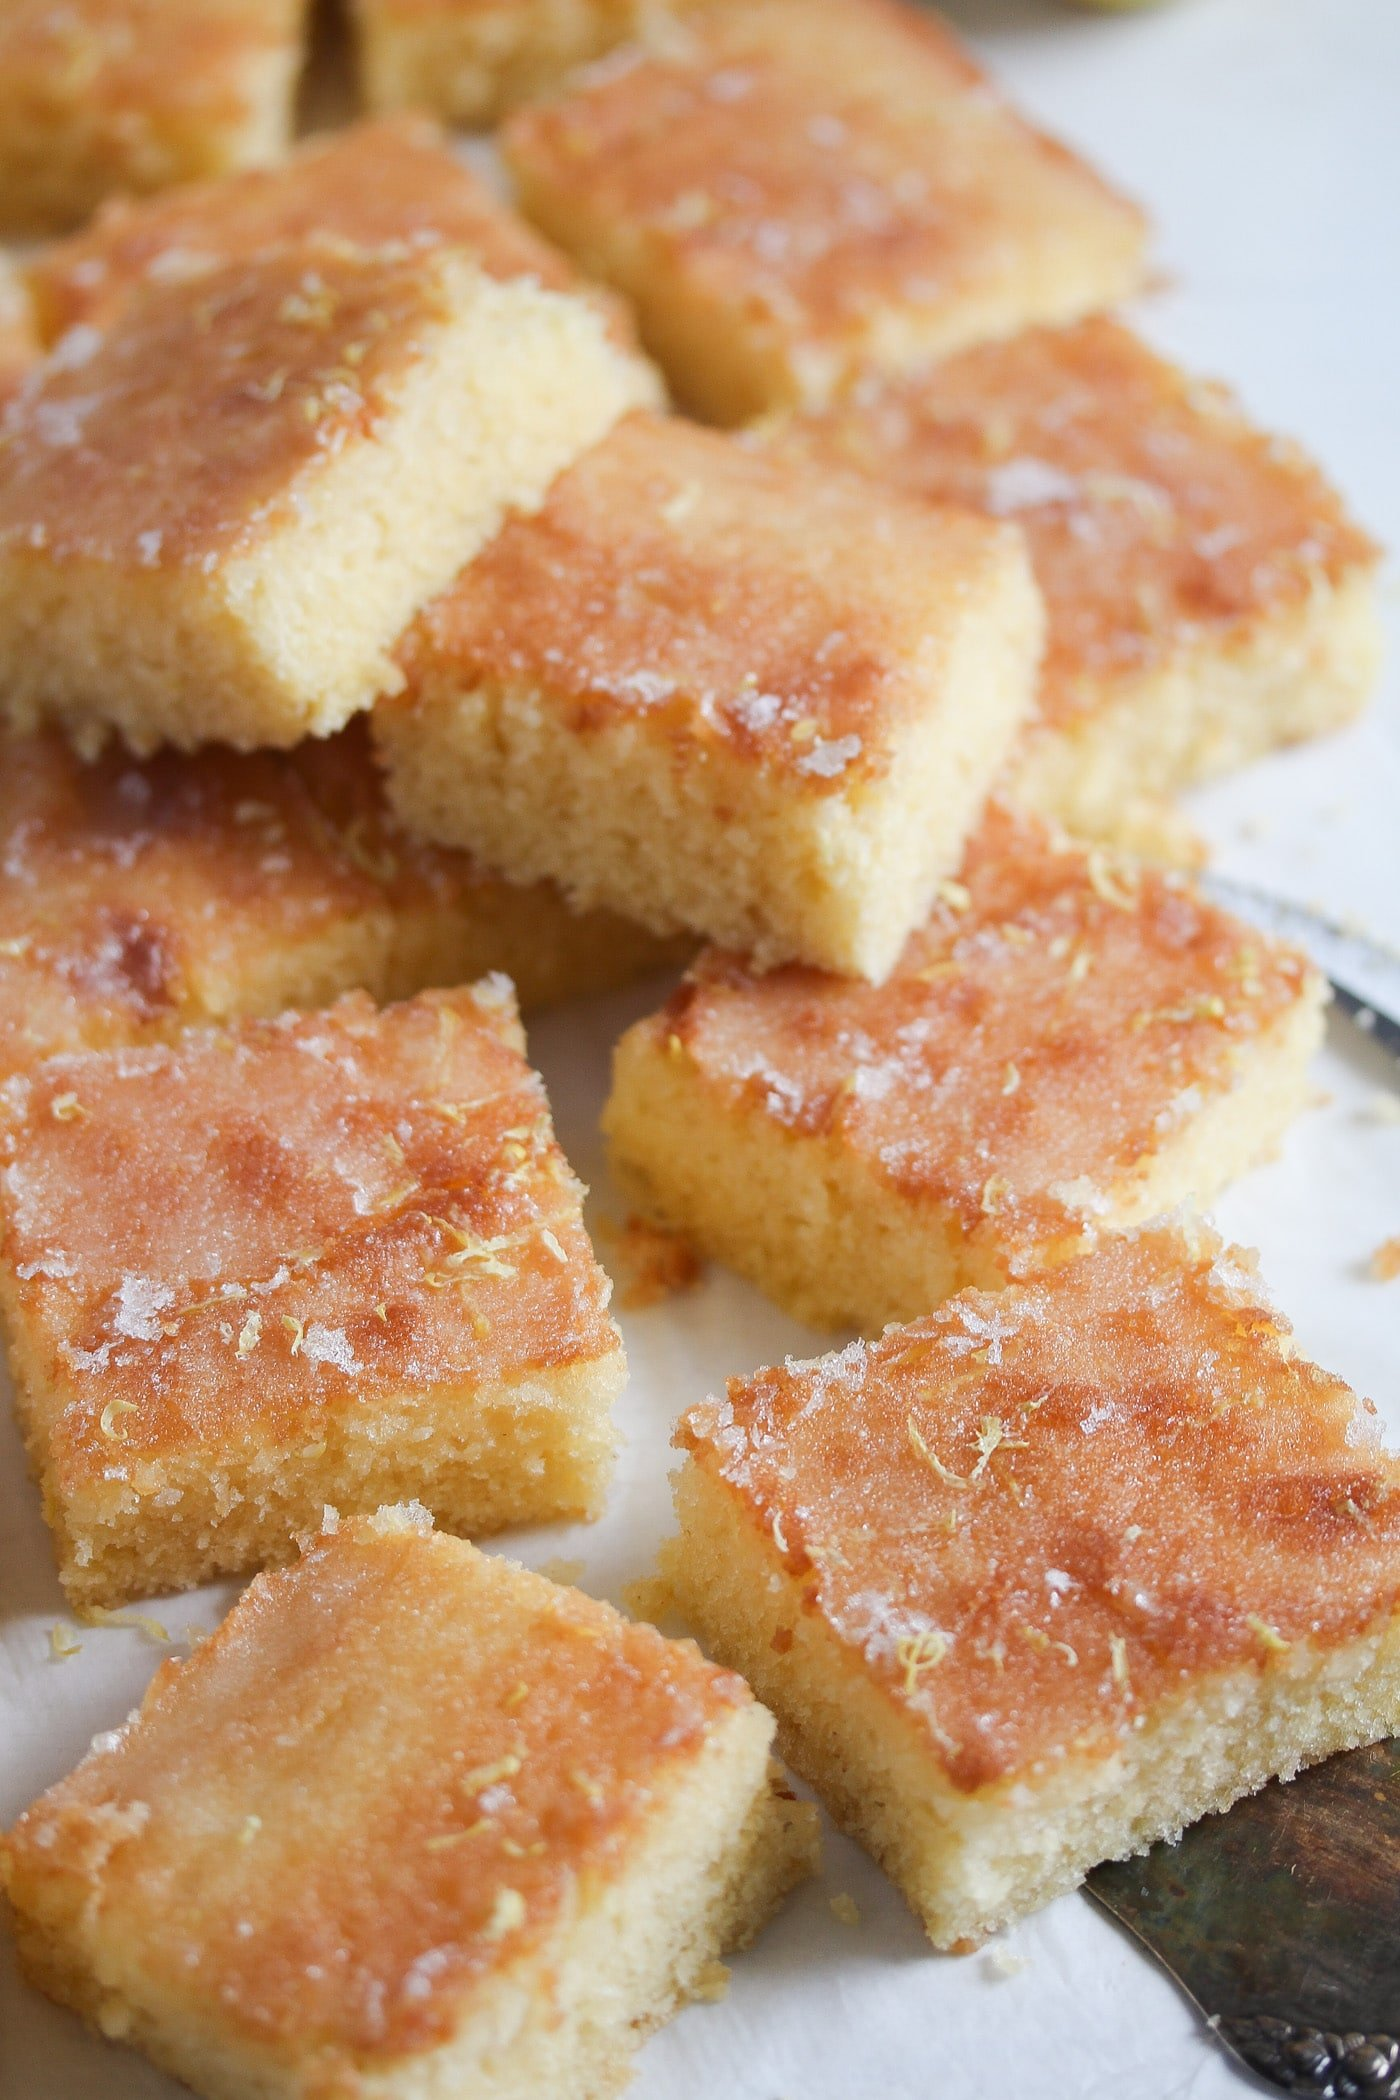 slices of soft lemon cake baked on a tray